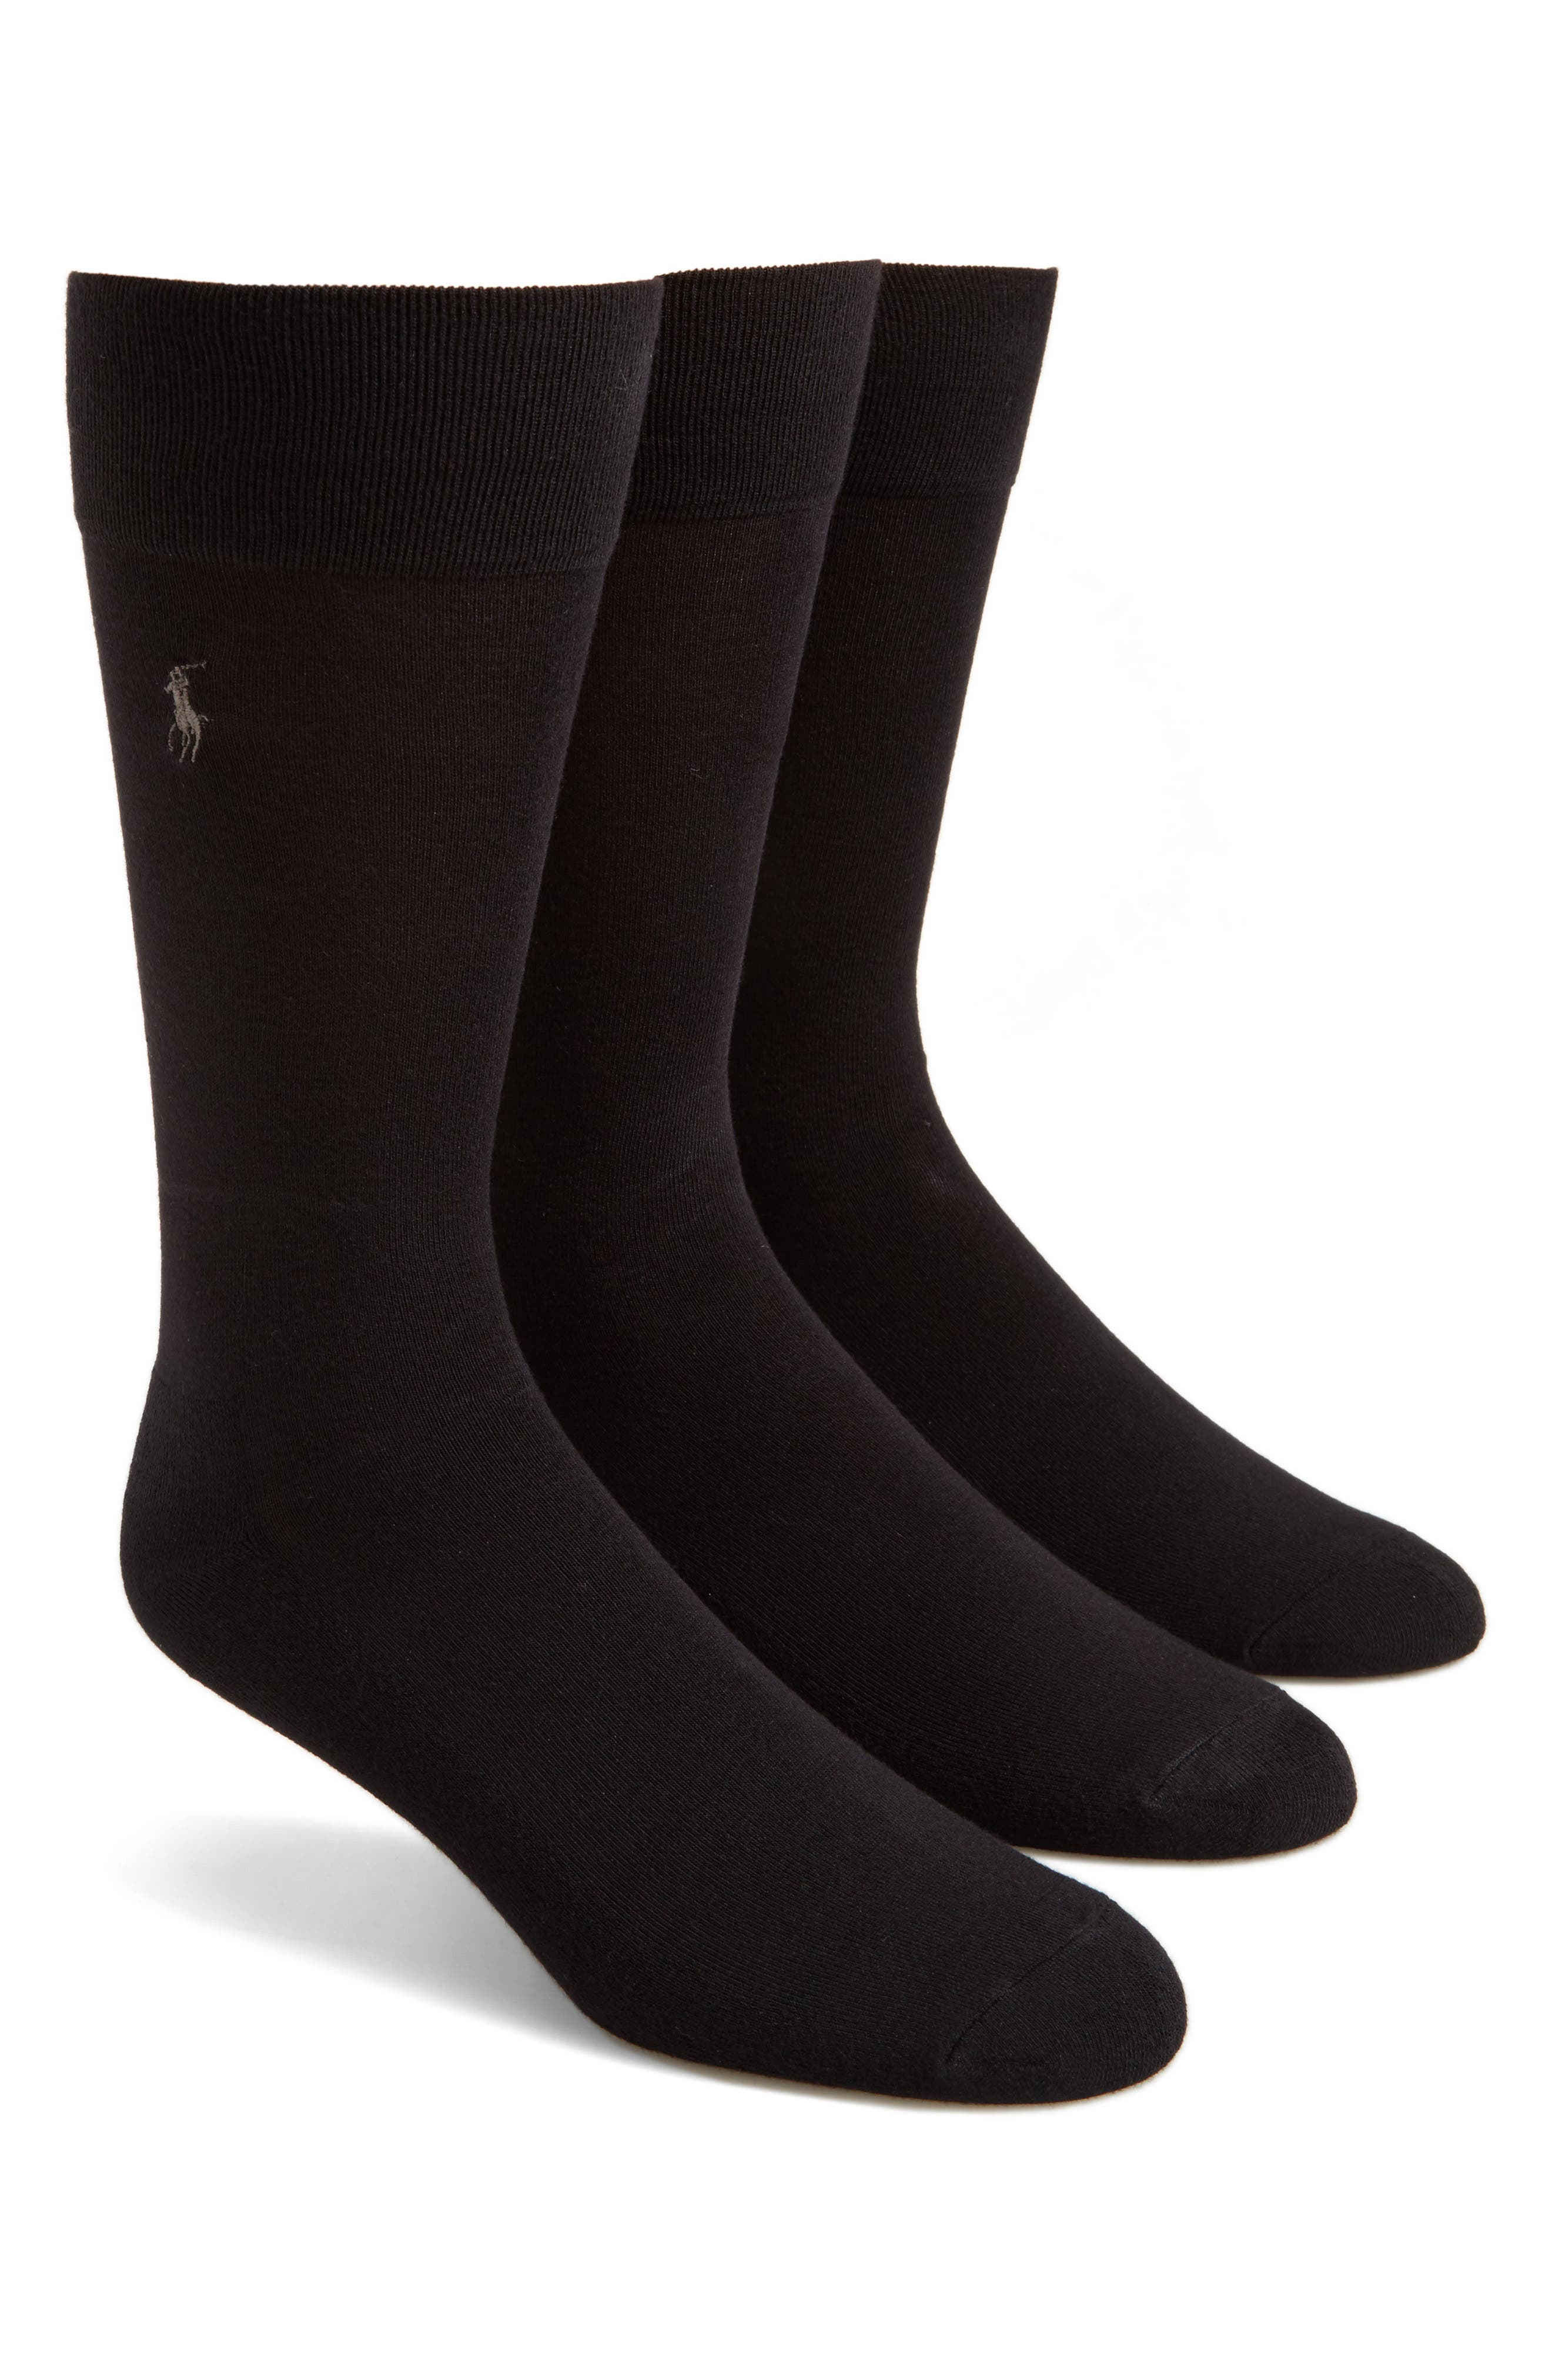 3-Pack Socks,                         Main,                         color, BLACK